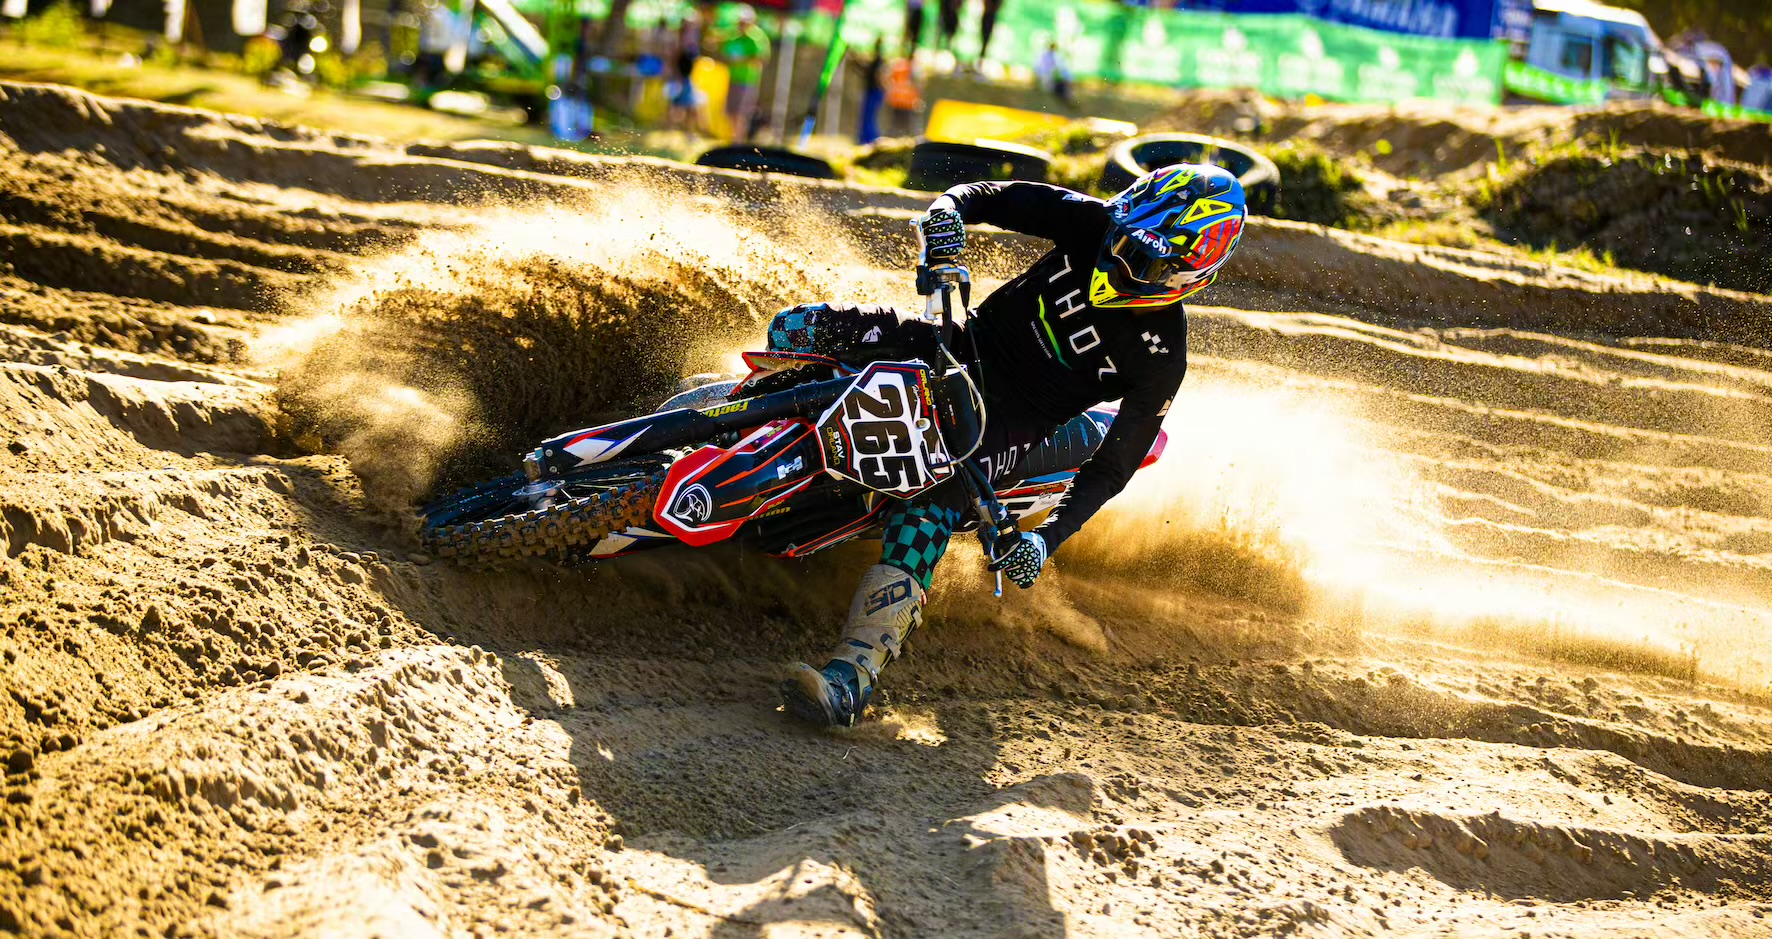 Stav Orland racing Round 2 of the 2021 South African National Motocross Championship